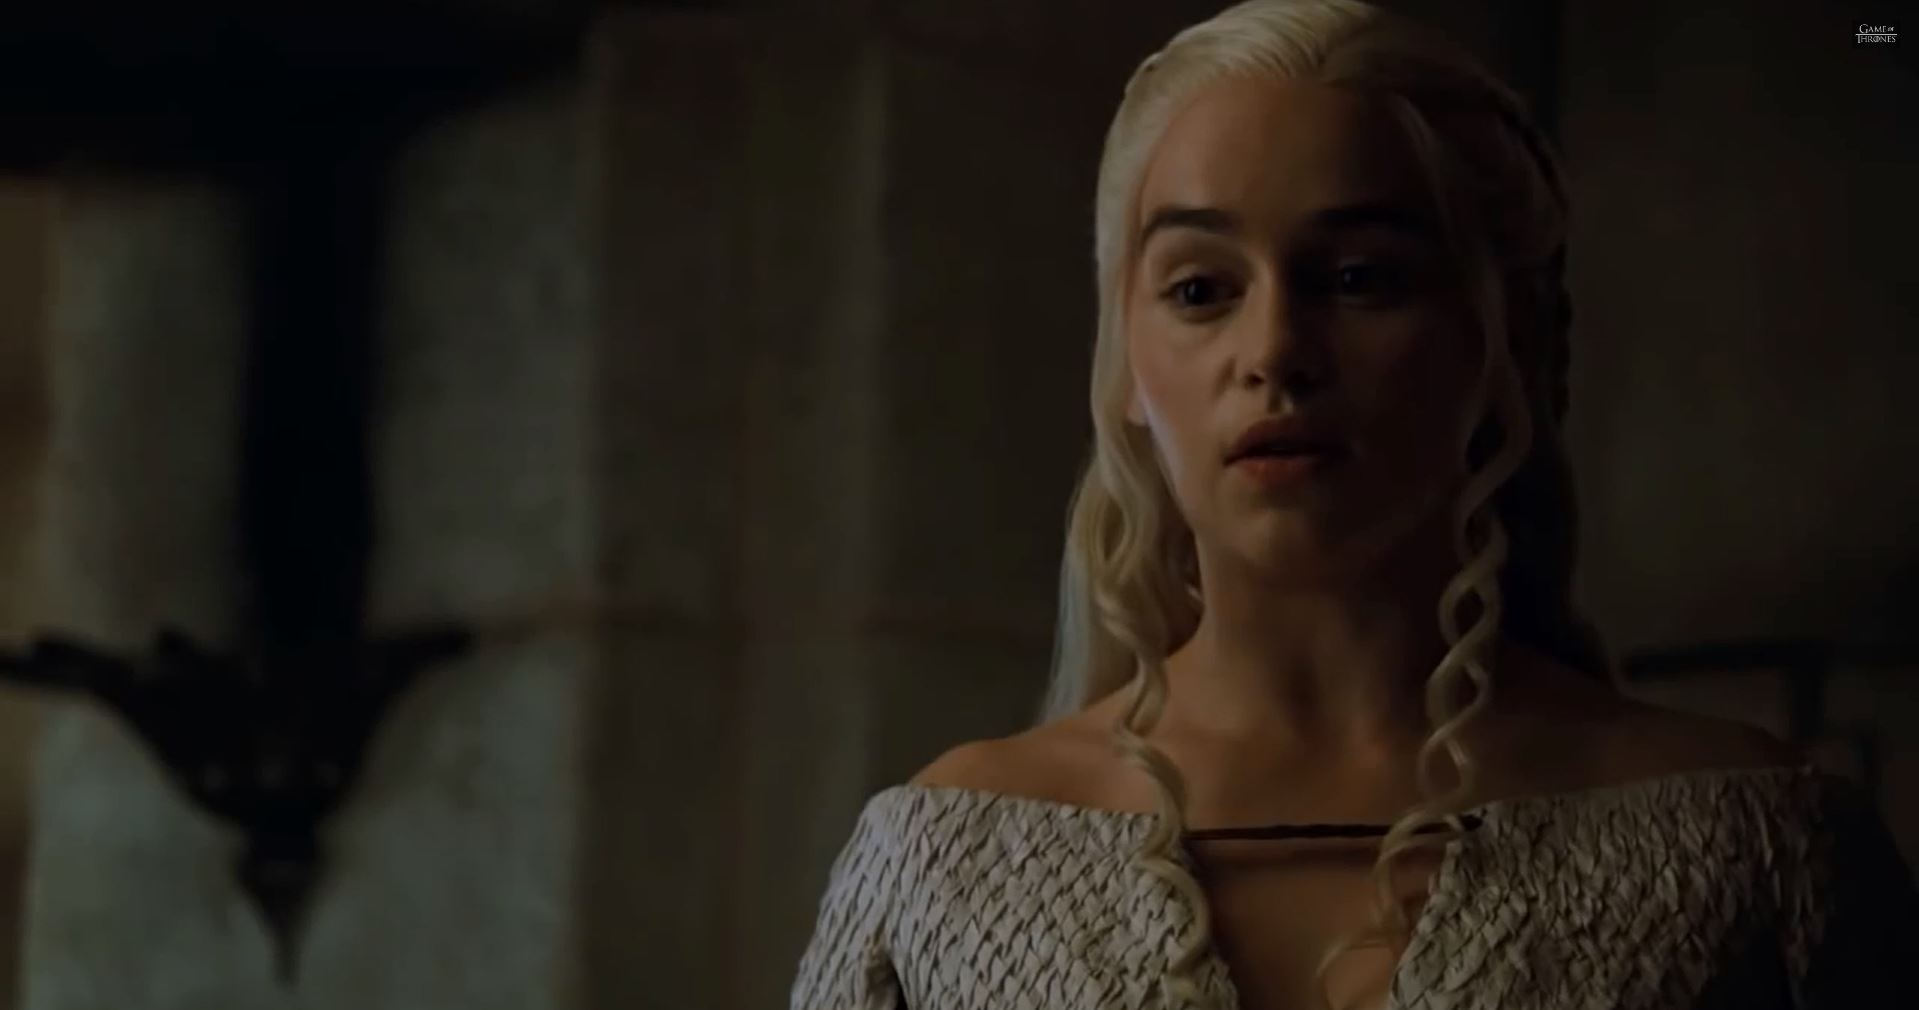 Game Of Thrones Season 5 Preview. Emilia Clarke as Queen Daenerys Targaryen